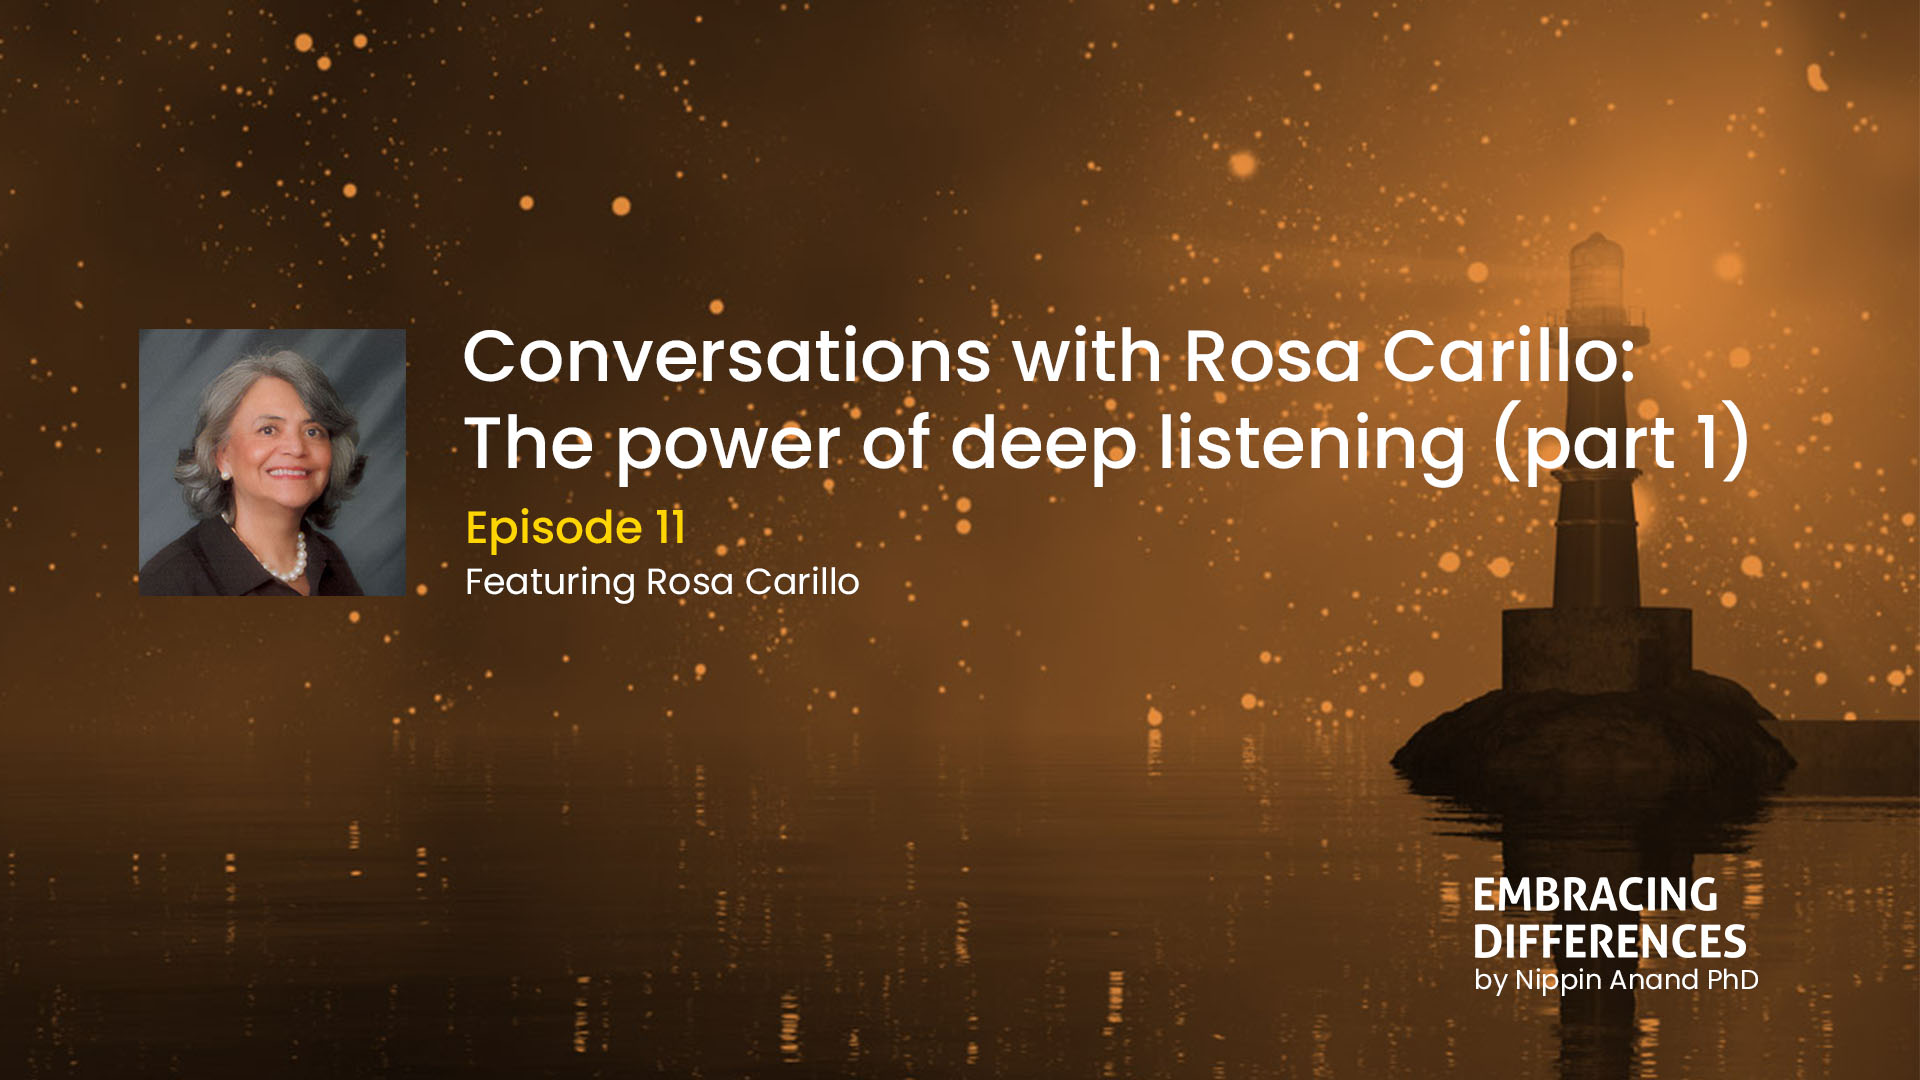 Conversations with Rosa Carrillo: The power of deep listening (part 1)